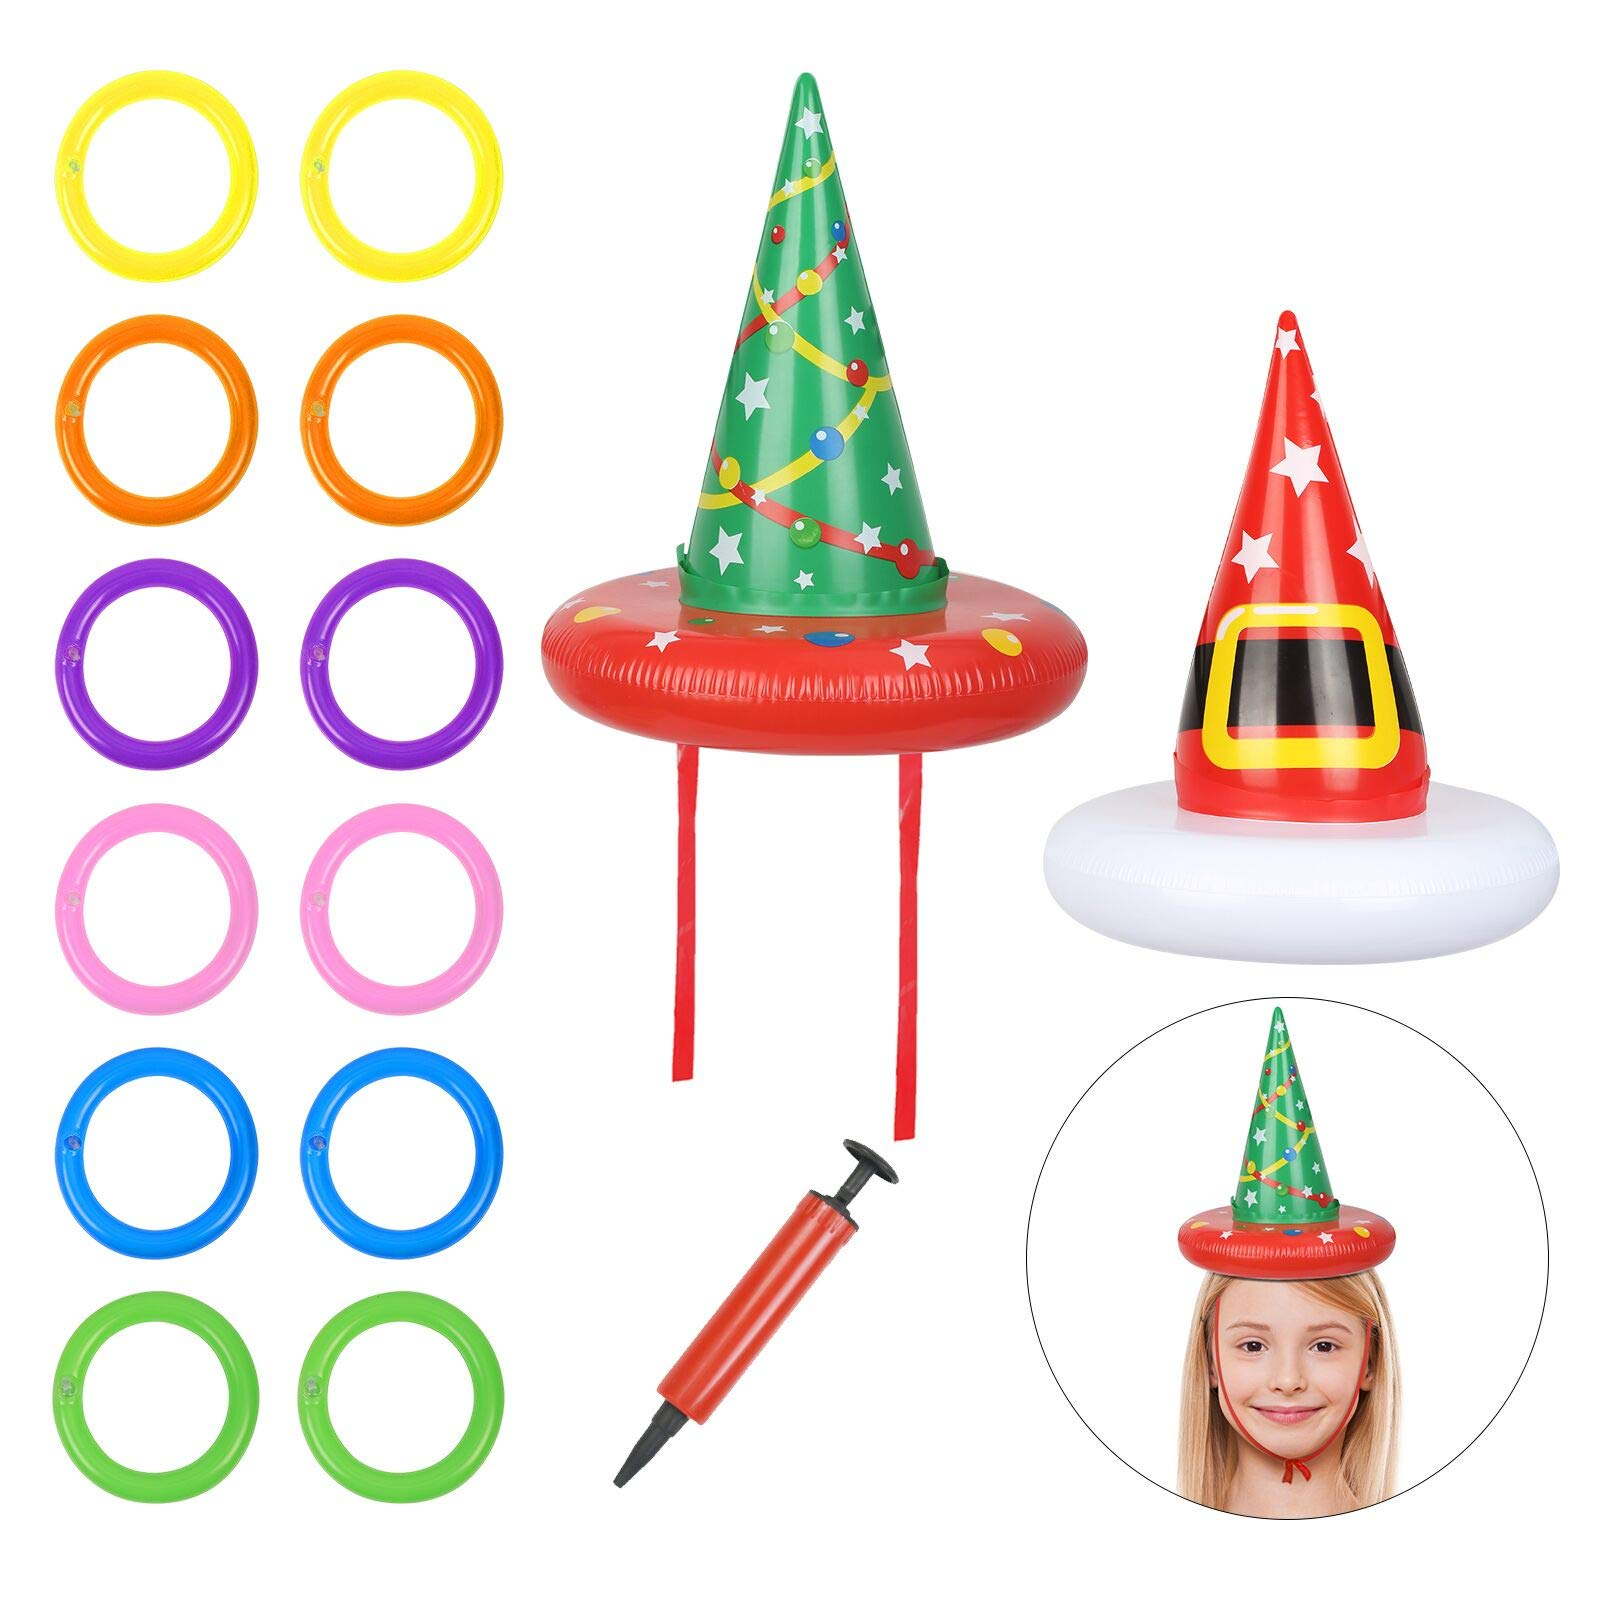 TAZEMAT Toss Game Ring 2 Pcs Inflatable Hat with 12 Pcs Inflatable Throwing Rings Kids Adults Indoor Outdoor Novelty Throwing Hoop Game Party Favors Supplies Fun Toys Gifts